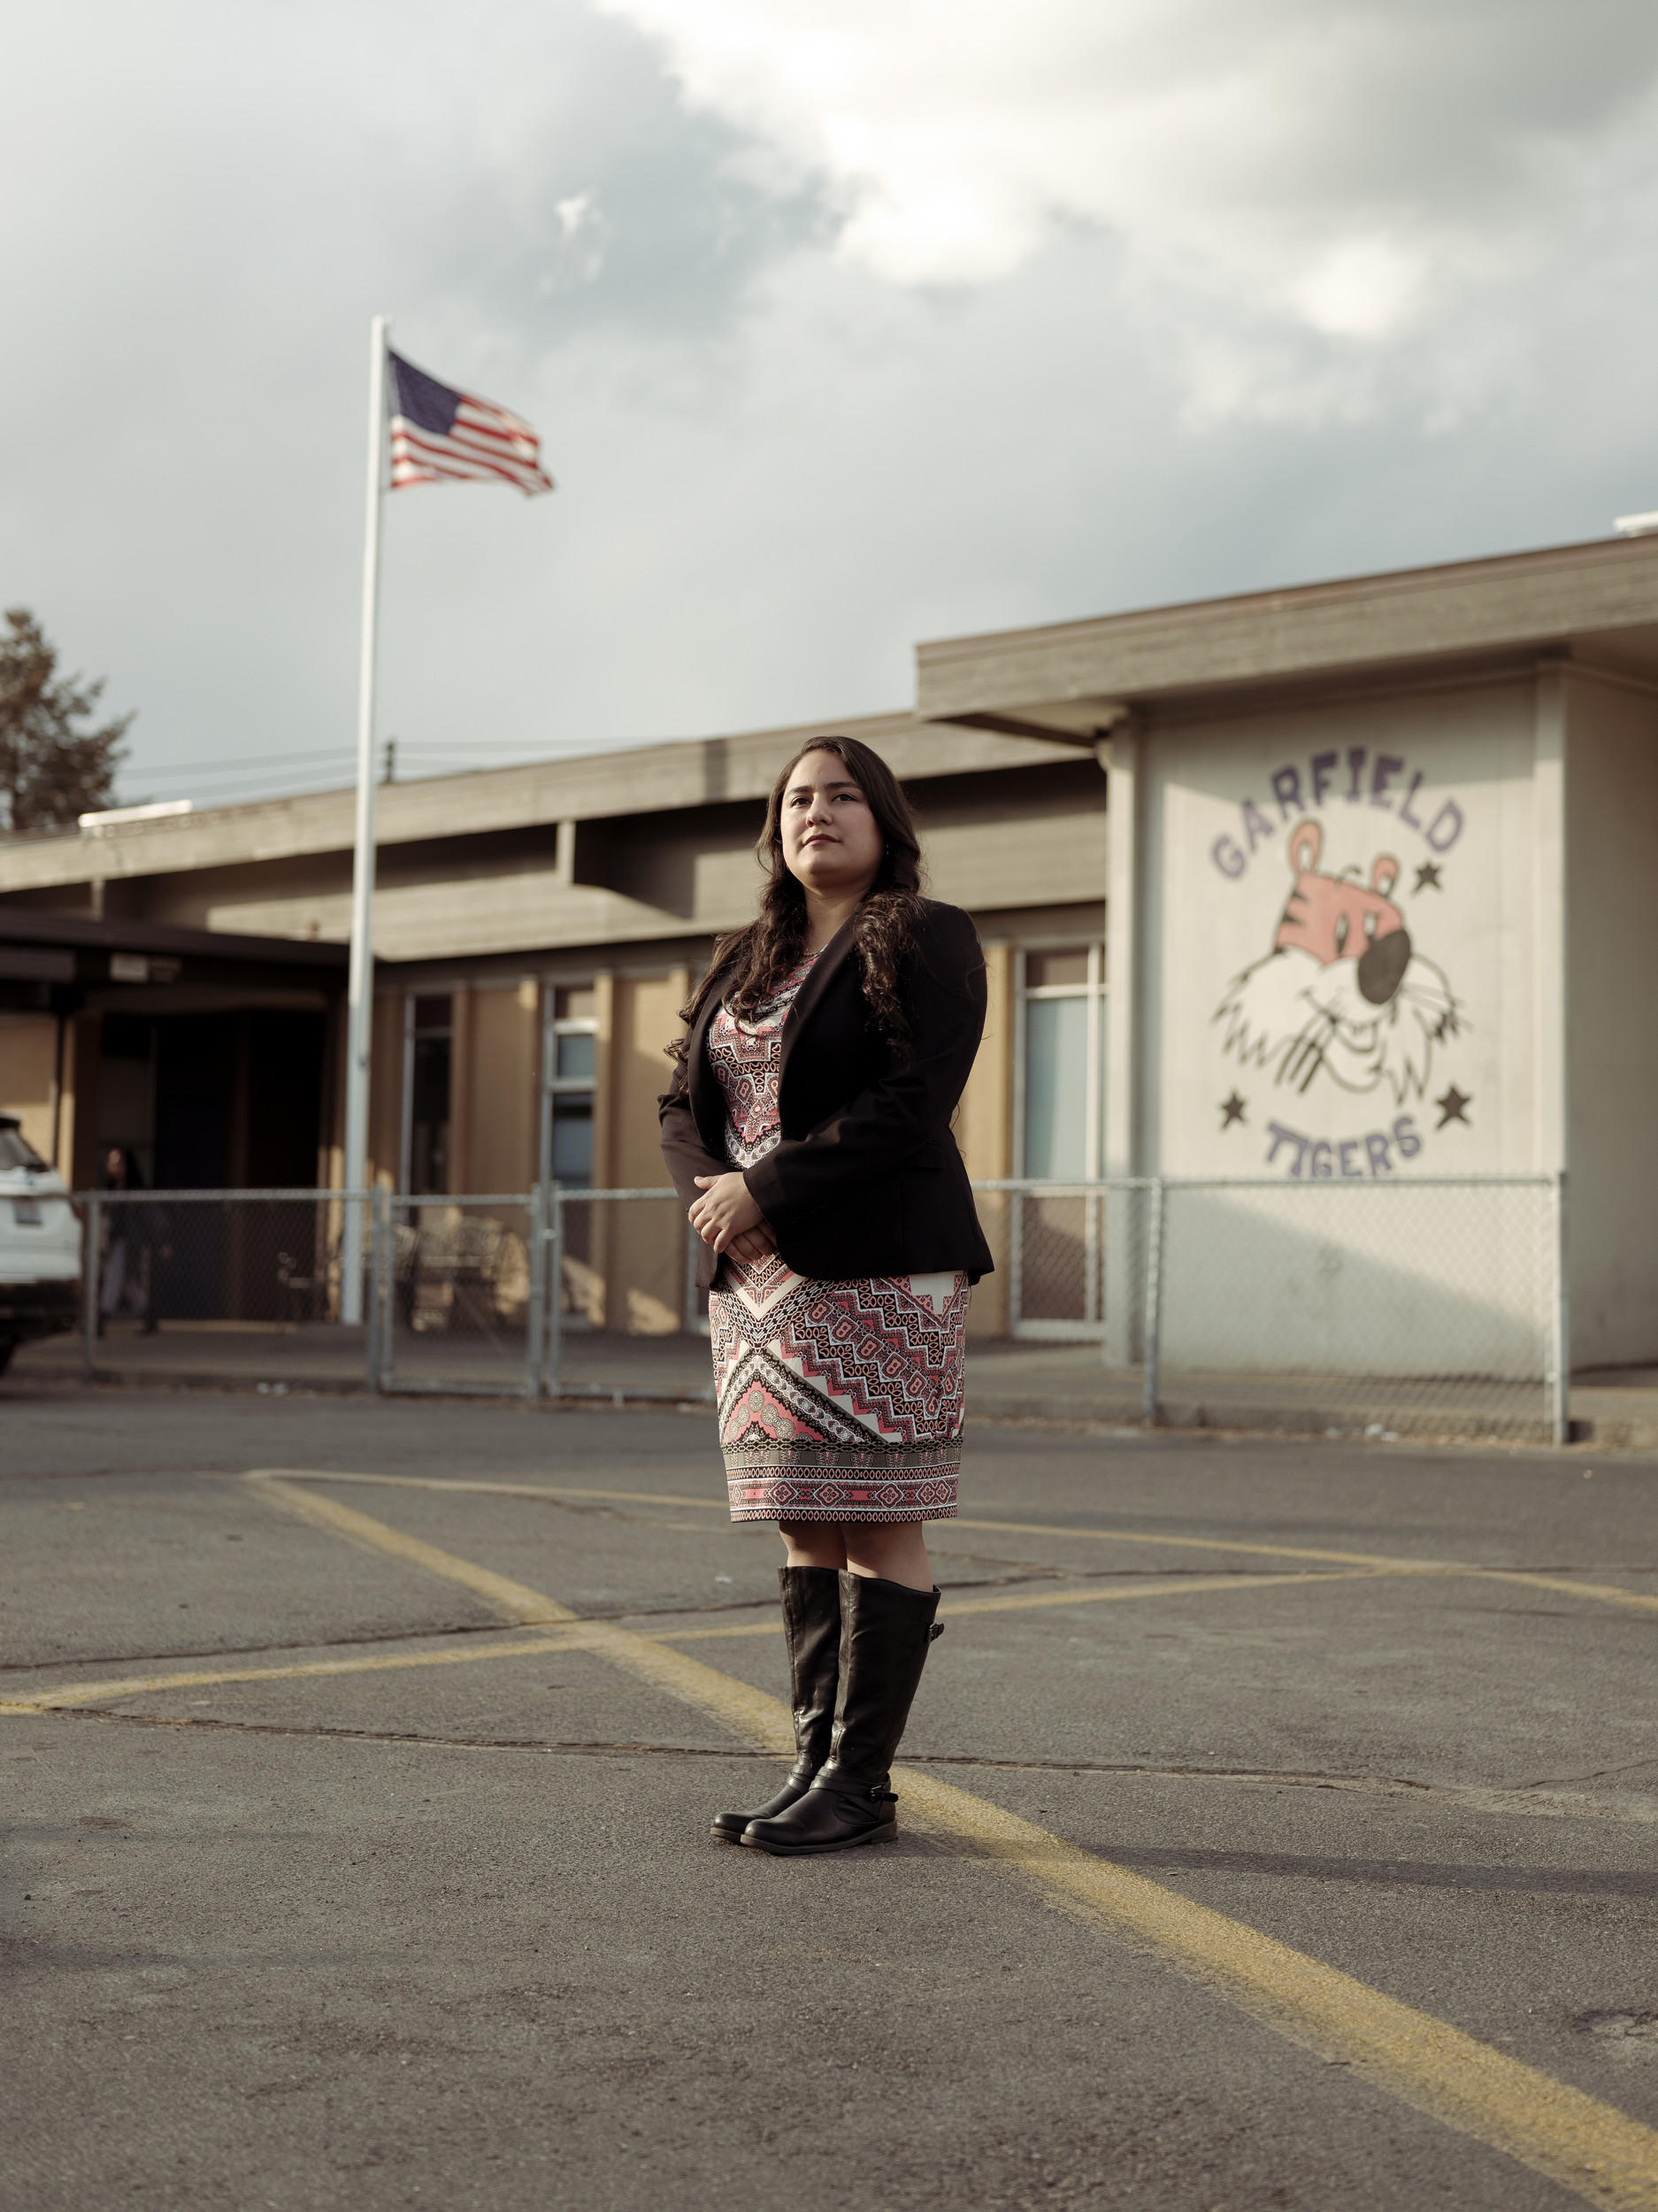 The New York Times / The Divide in Yakima Is the Divide in America